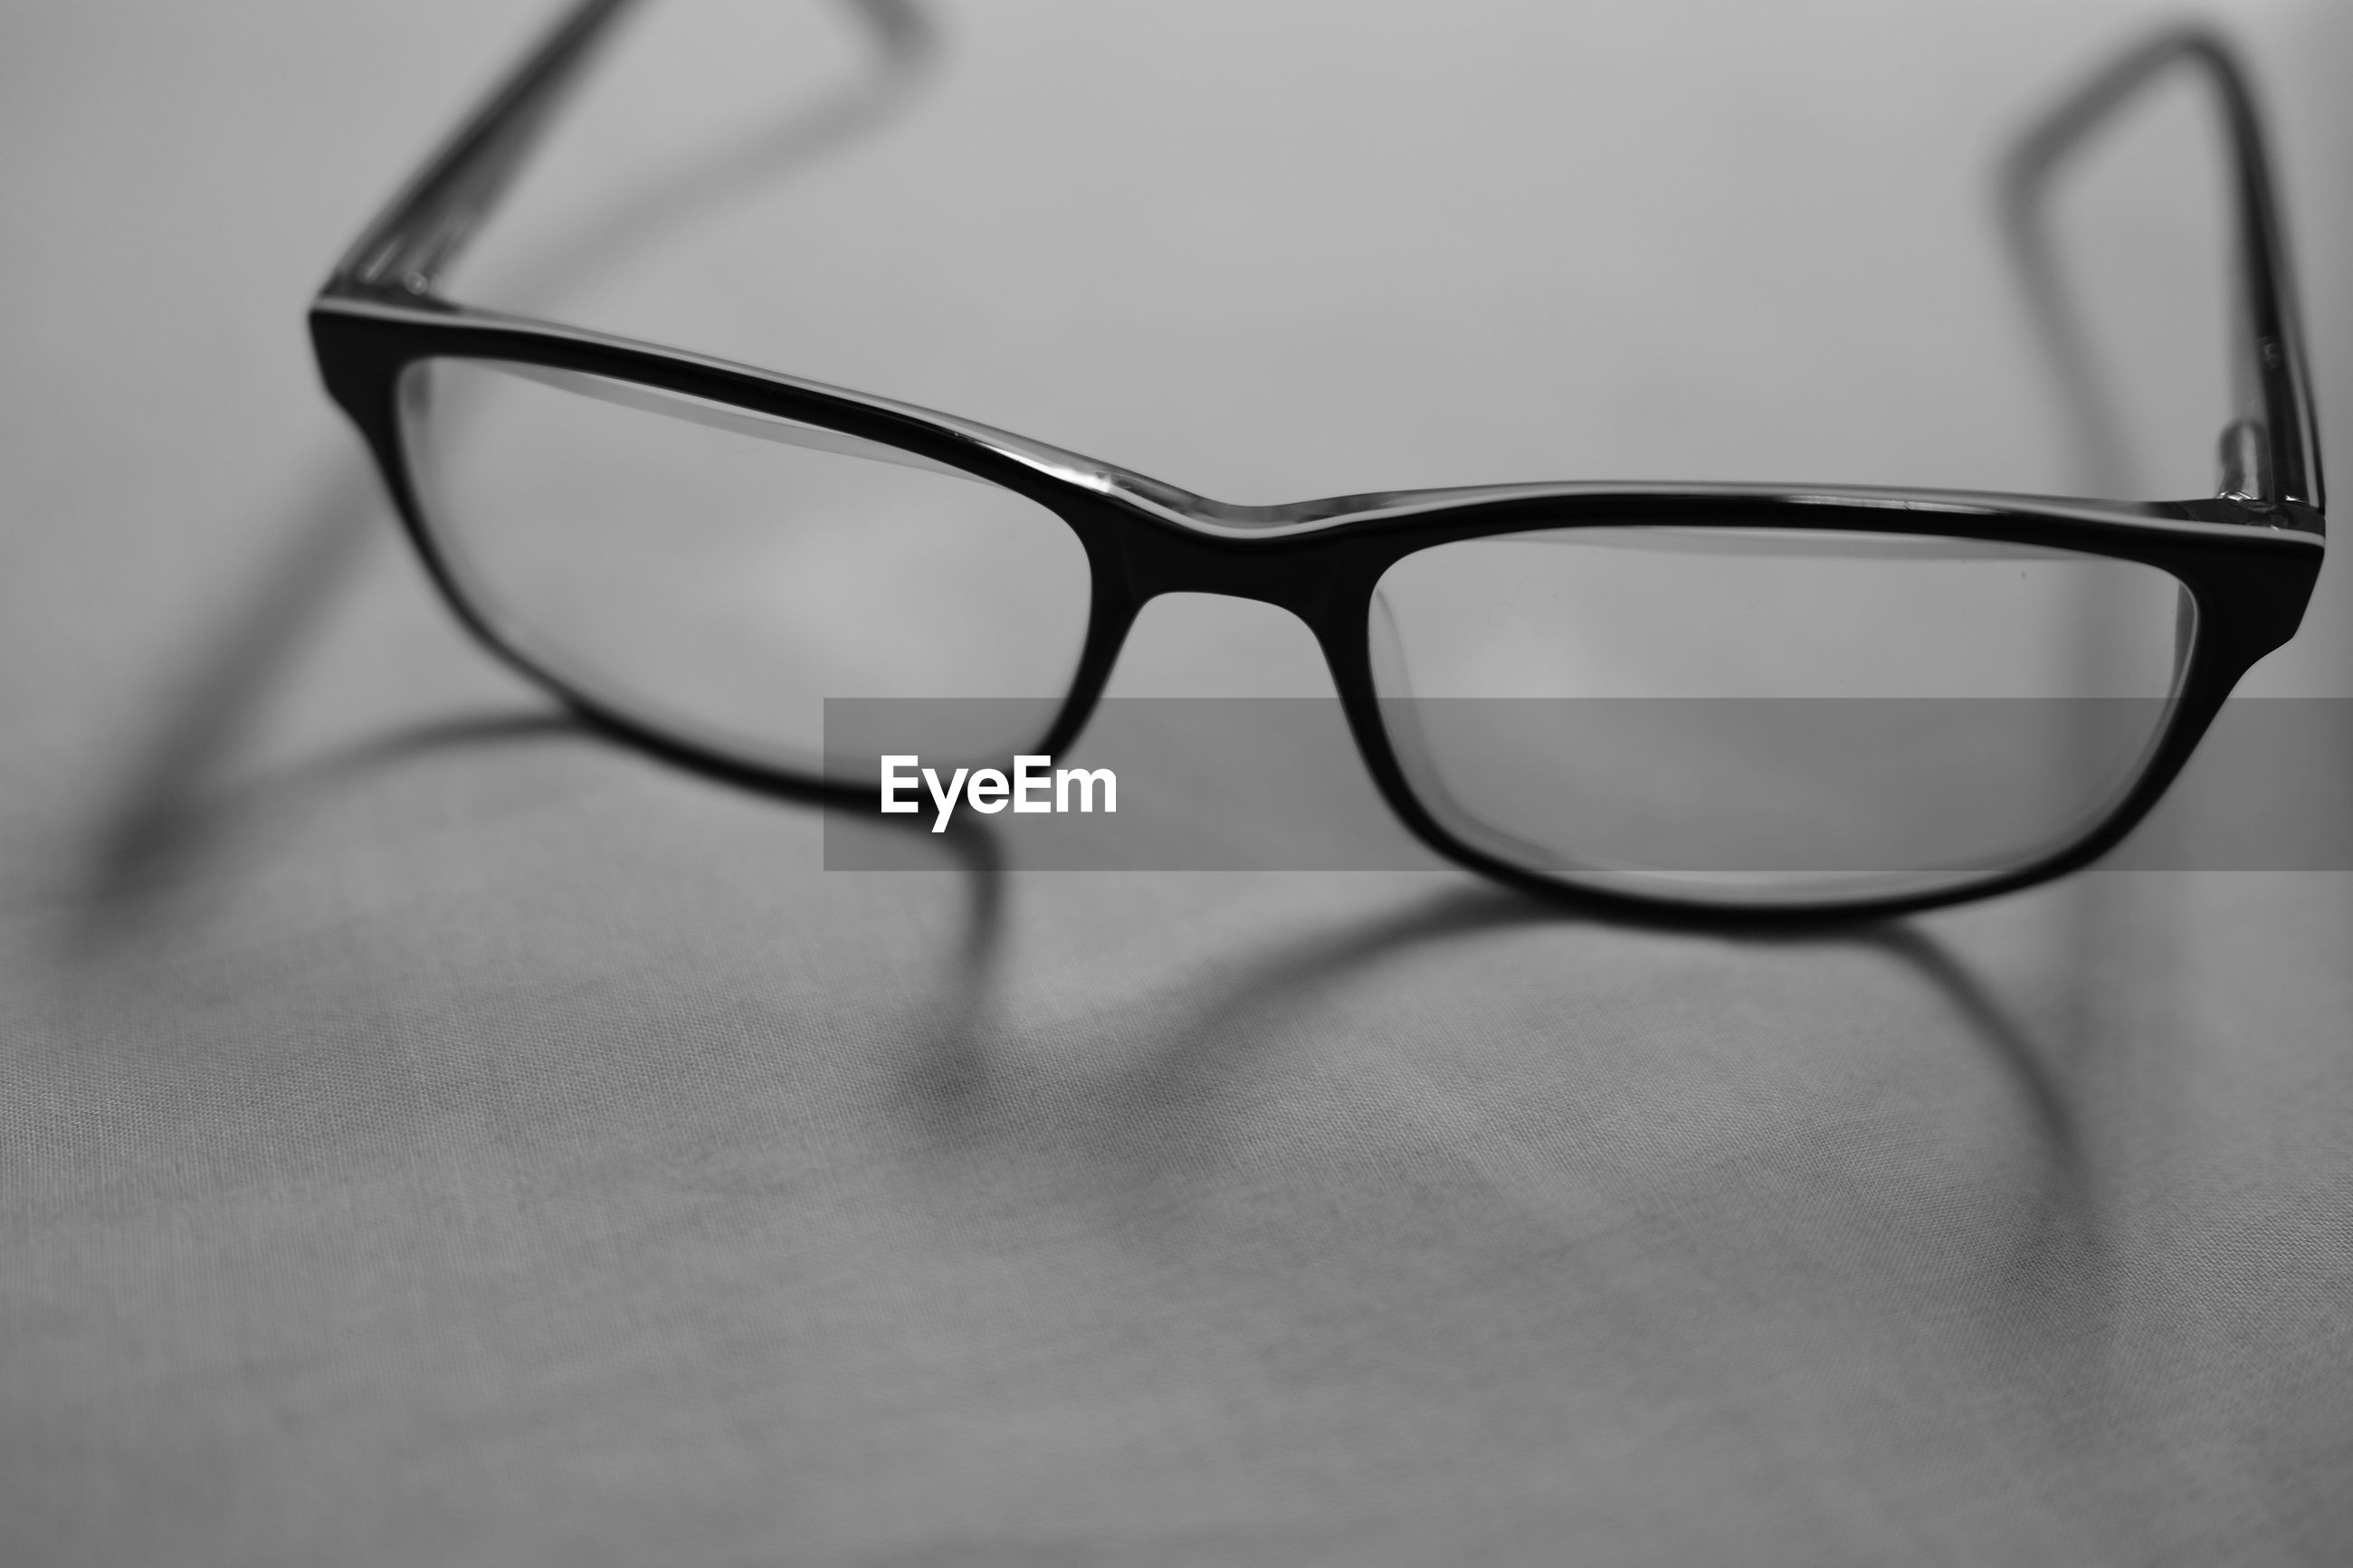 CLOSE-UP OF EYEGLASSES ON GLASS TABLE